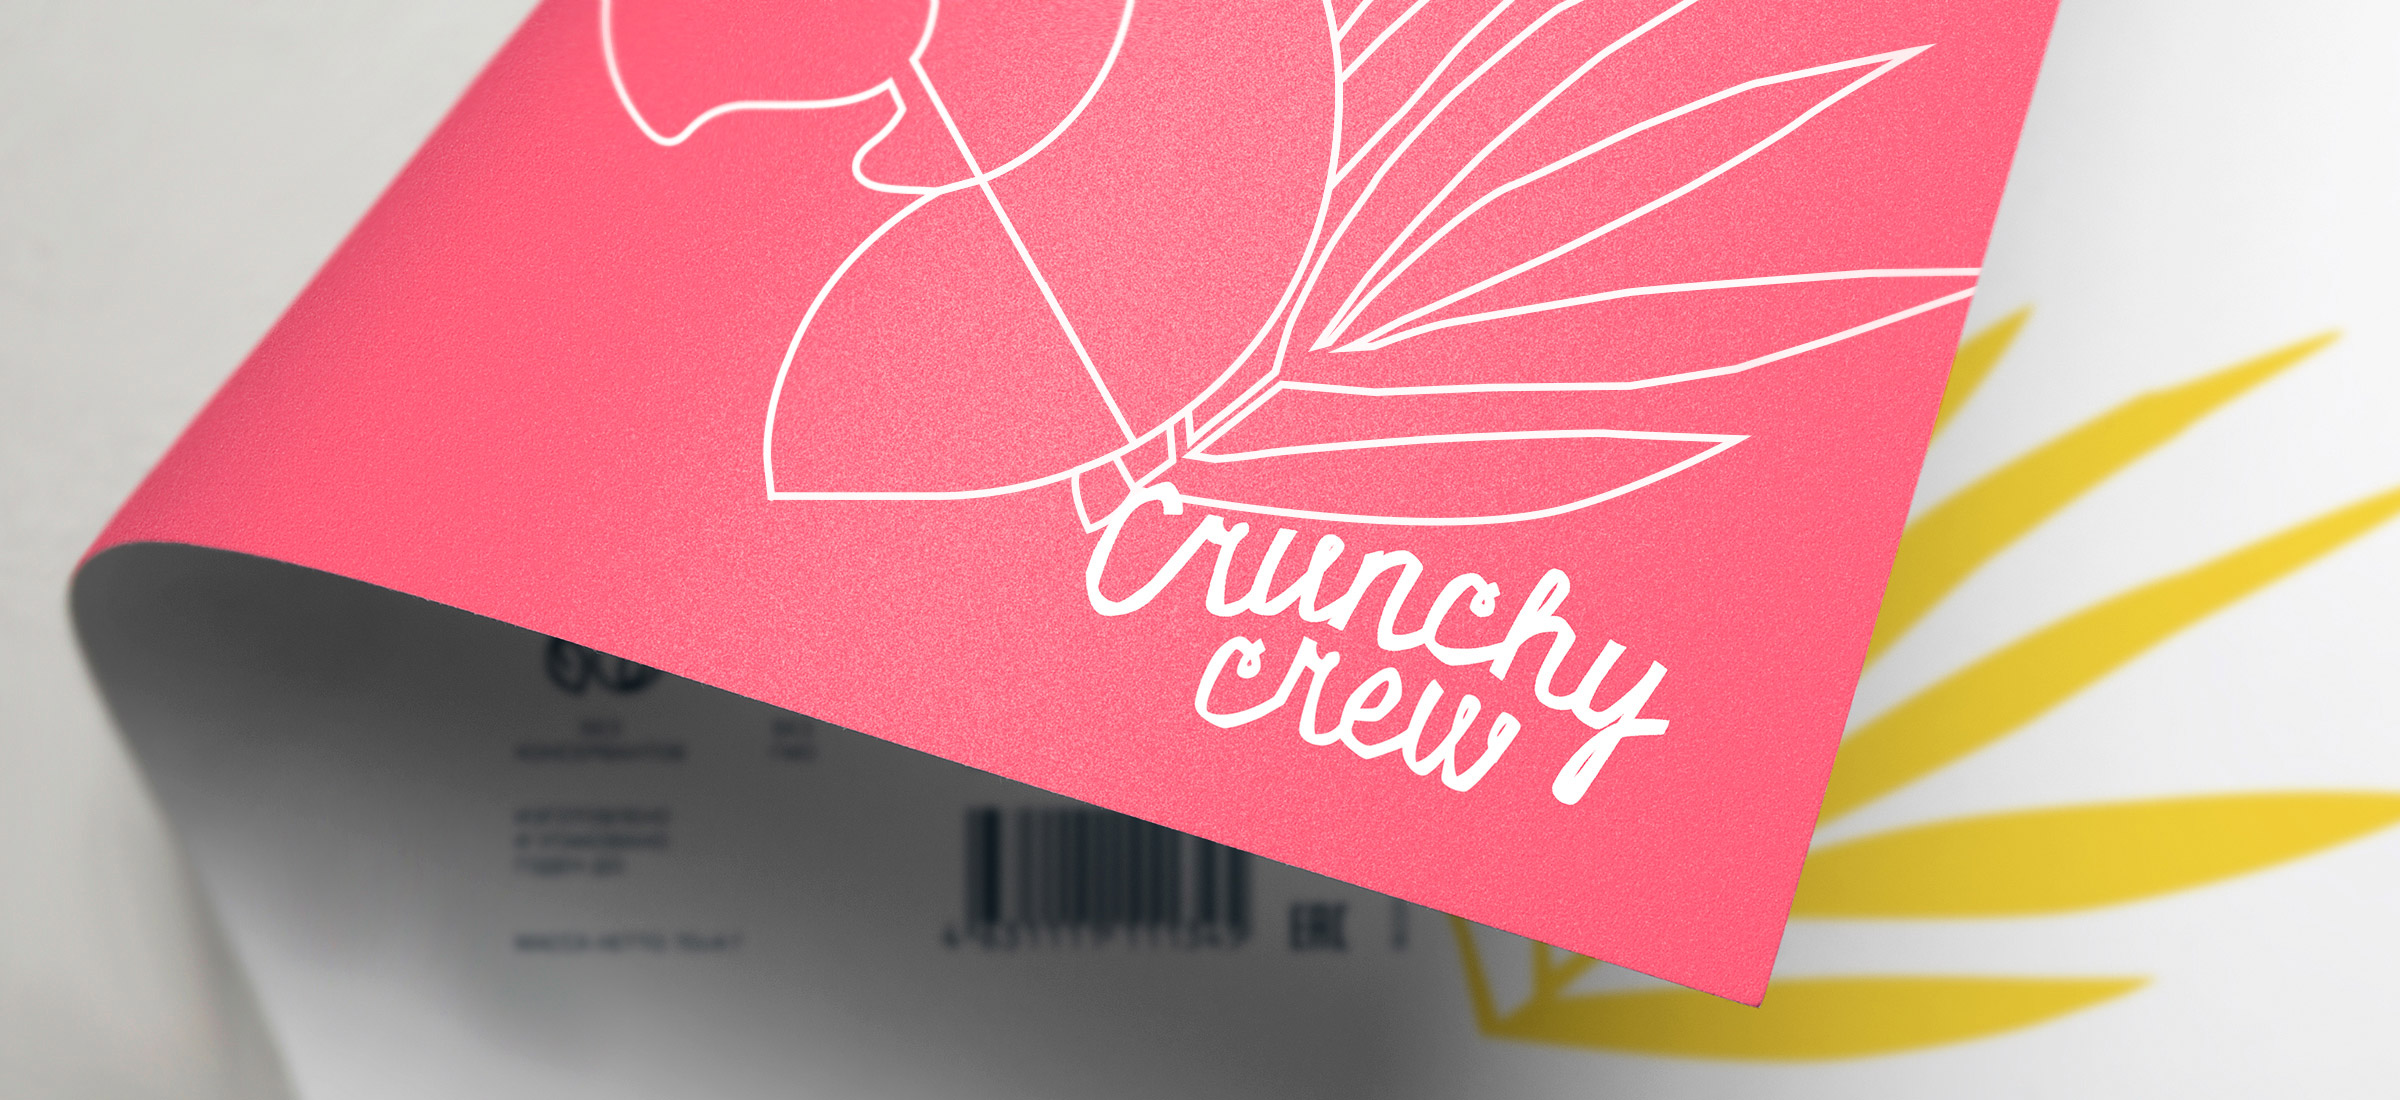 Naming, Logo and Packaging Design for Crunchy Crew Fruit Chips / World Brand Design Society